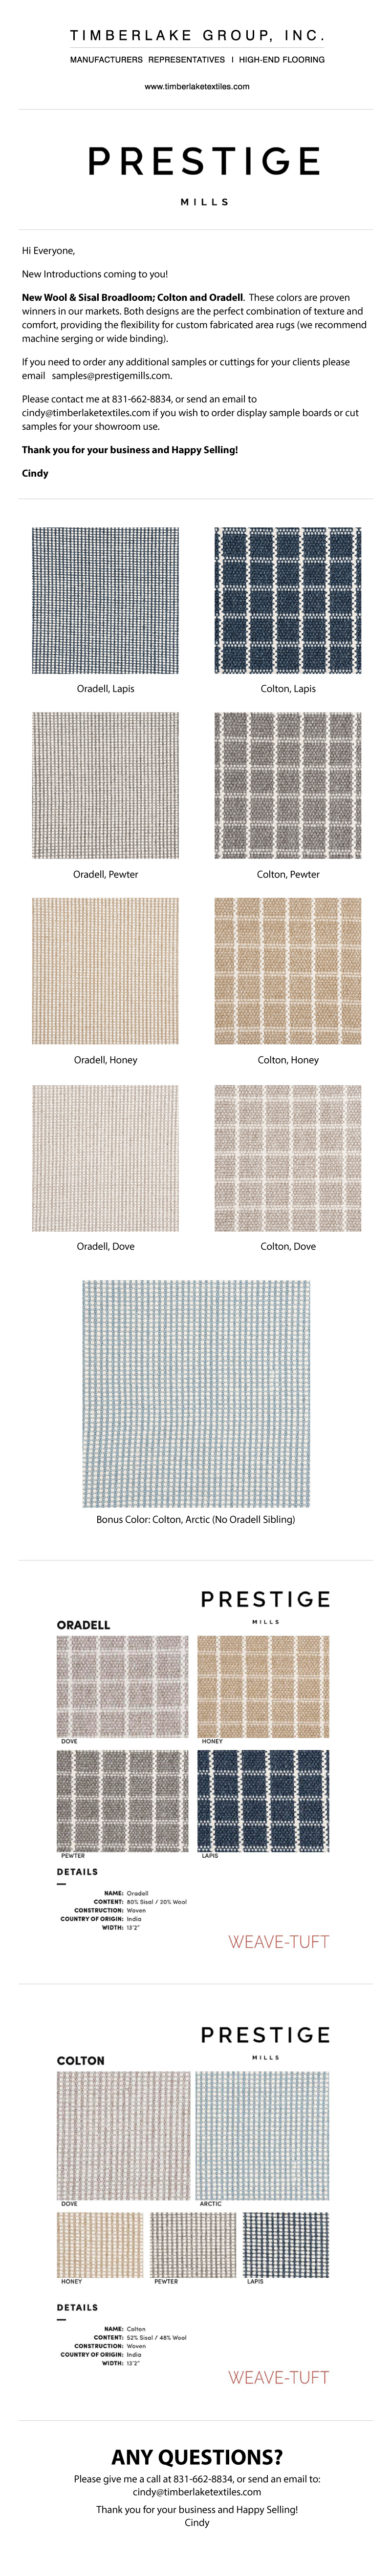 Prestige MIlls- New Wool & Sisal Broadloom; Colton and Oradell